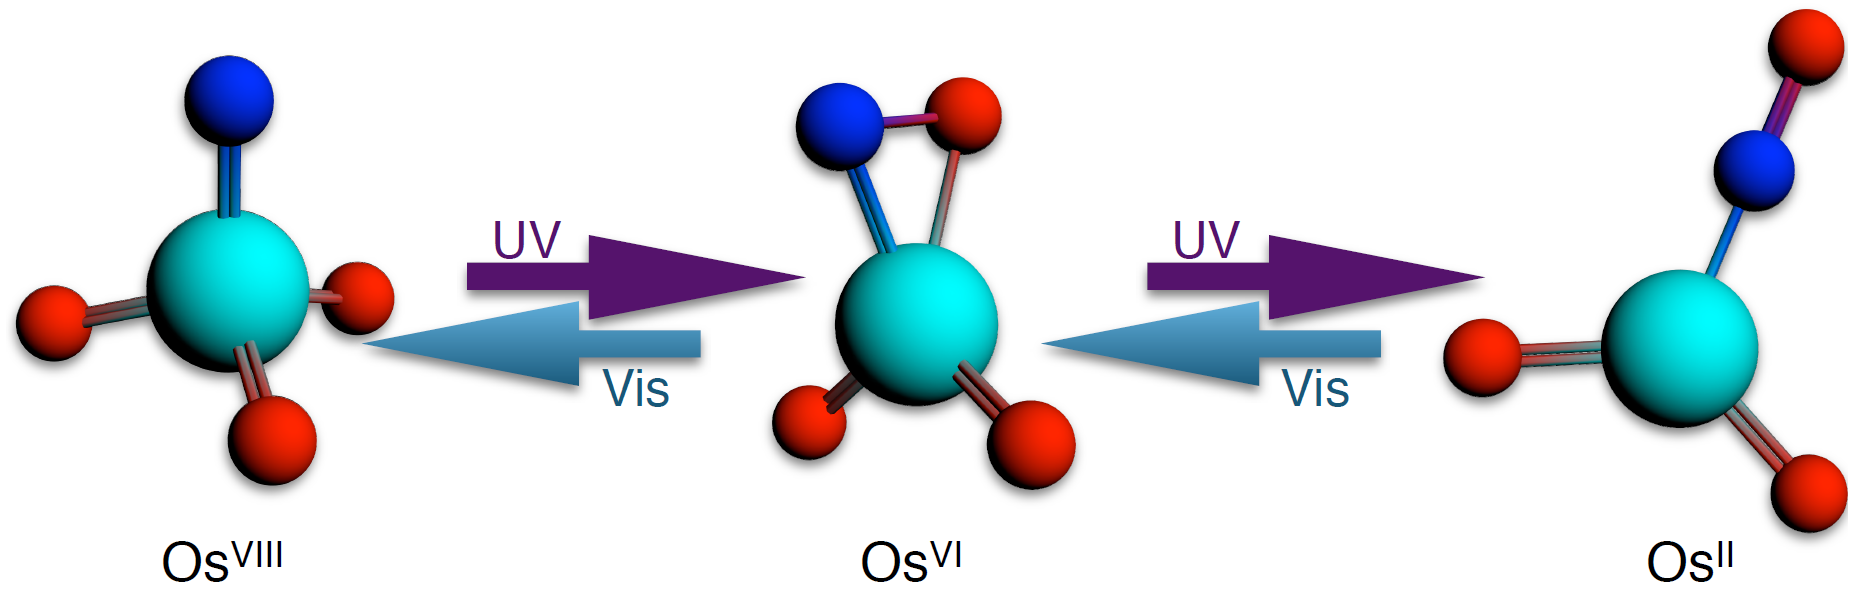 Reverisble 6e photo-oxidation and reduction